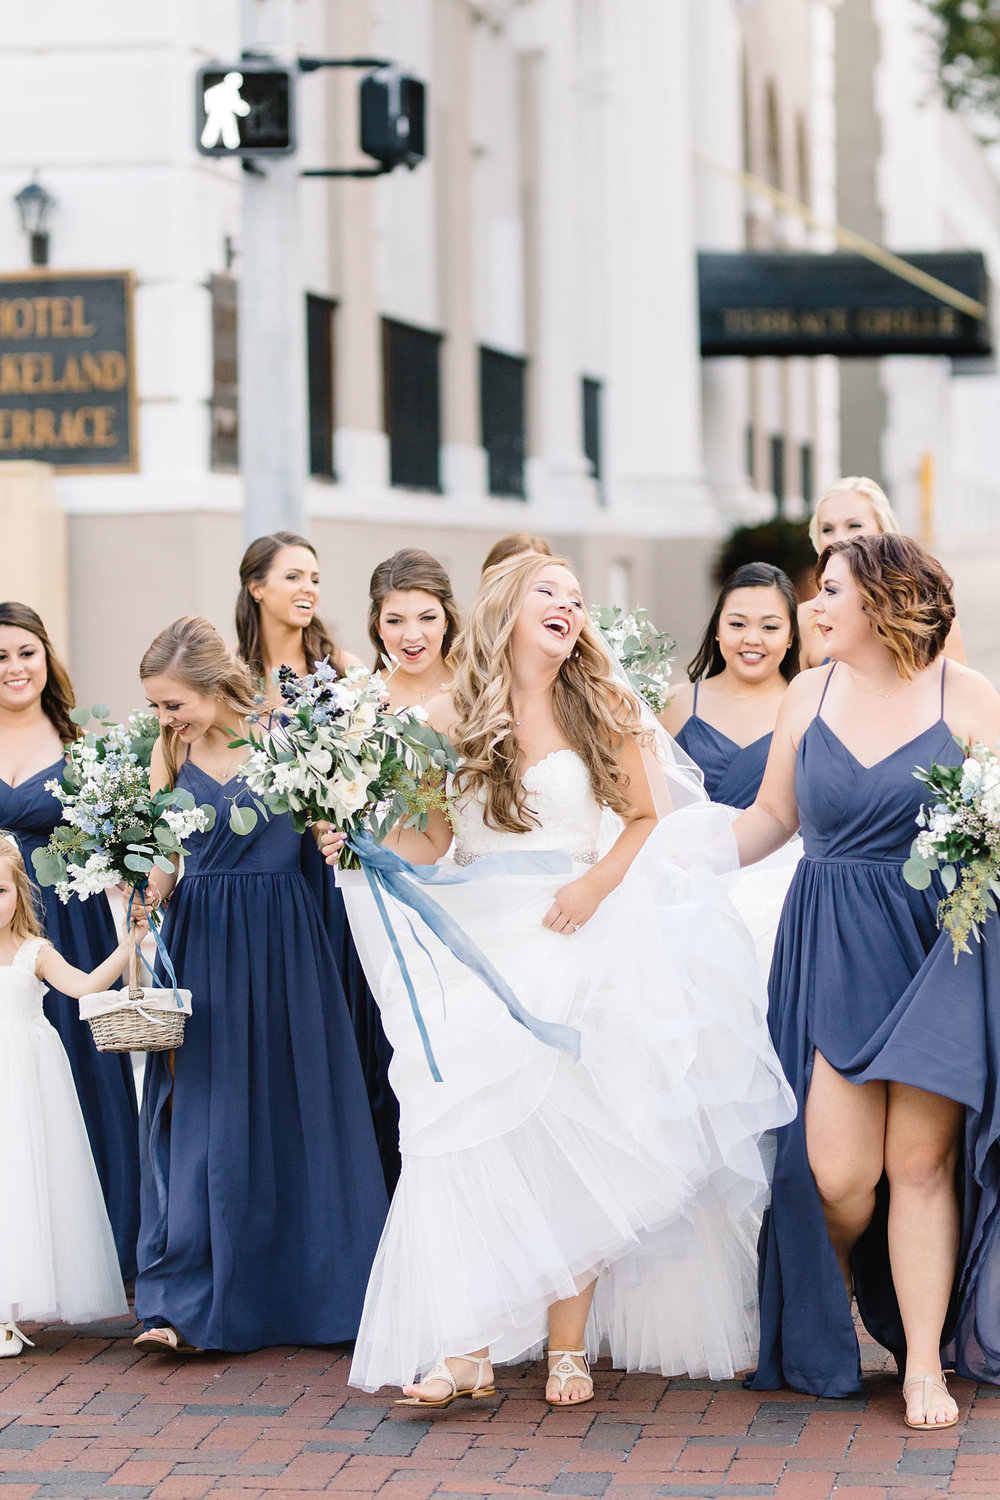 Slate Blue and Cotton Wedding